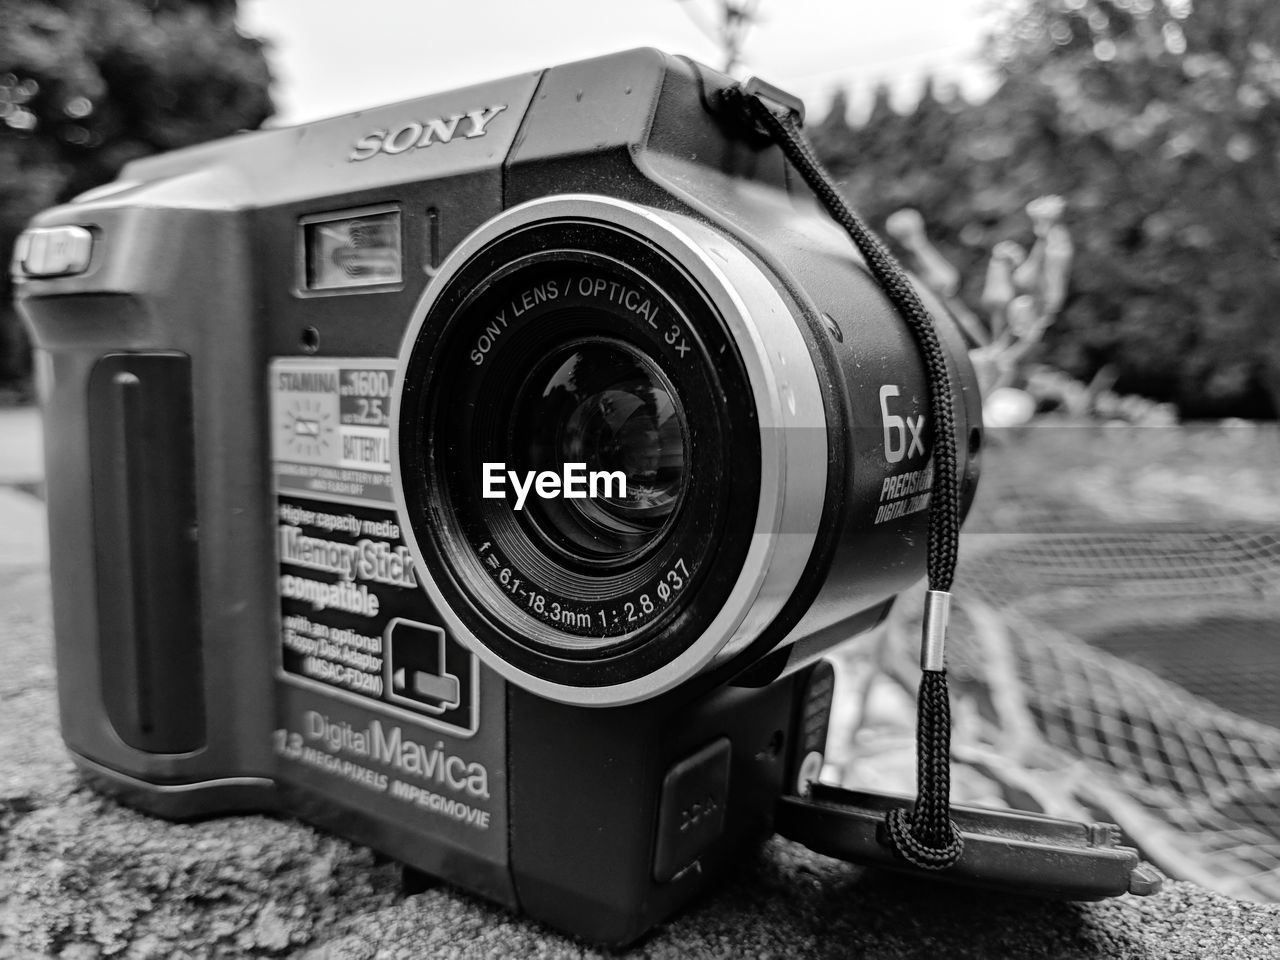 technology, camera - photographic equipment, photography themes, focus on foreground, close-up, photographic equipment, lens - optical instrument, camera, digital camera, no people, equipment, retro styled, day, still life, photographing, single object, number, modern, text, slr camera